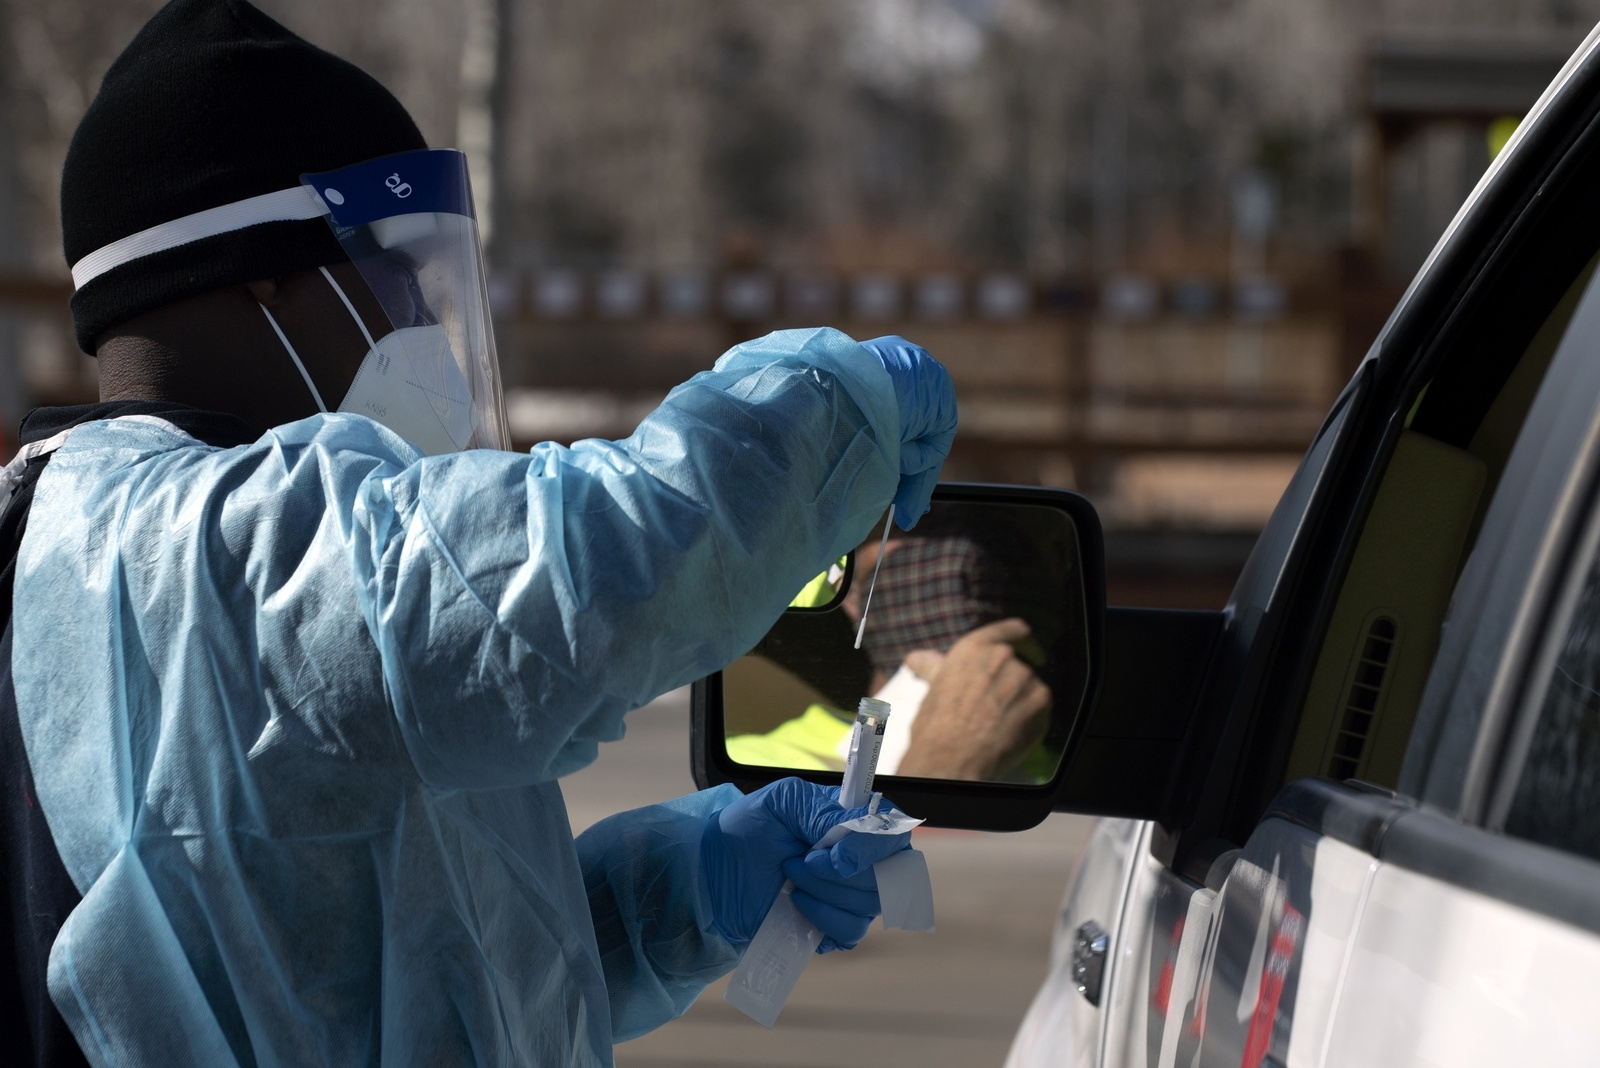 A MAKO Medical technician handles a COVID test at the Silverthorne drive-through testing site on Friday, Nov. 20. Approximately 200 - 300 tests are being processed each day at the site.